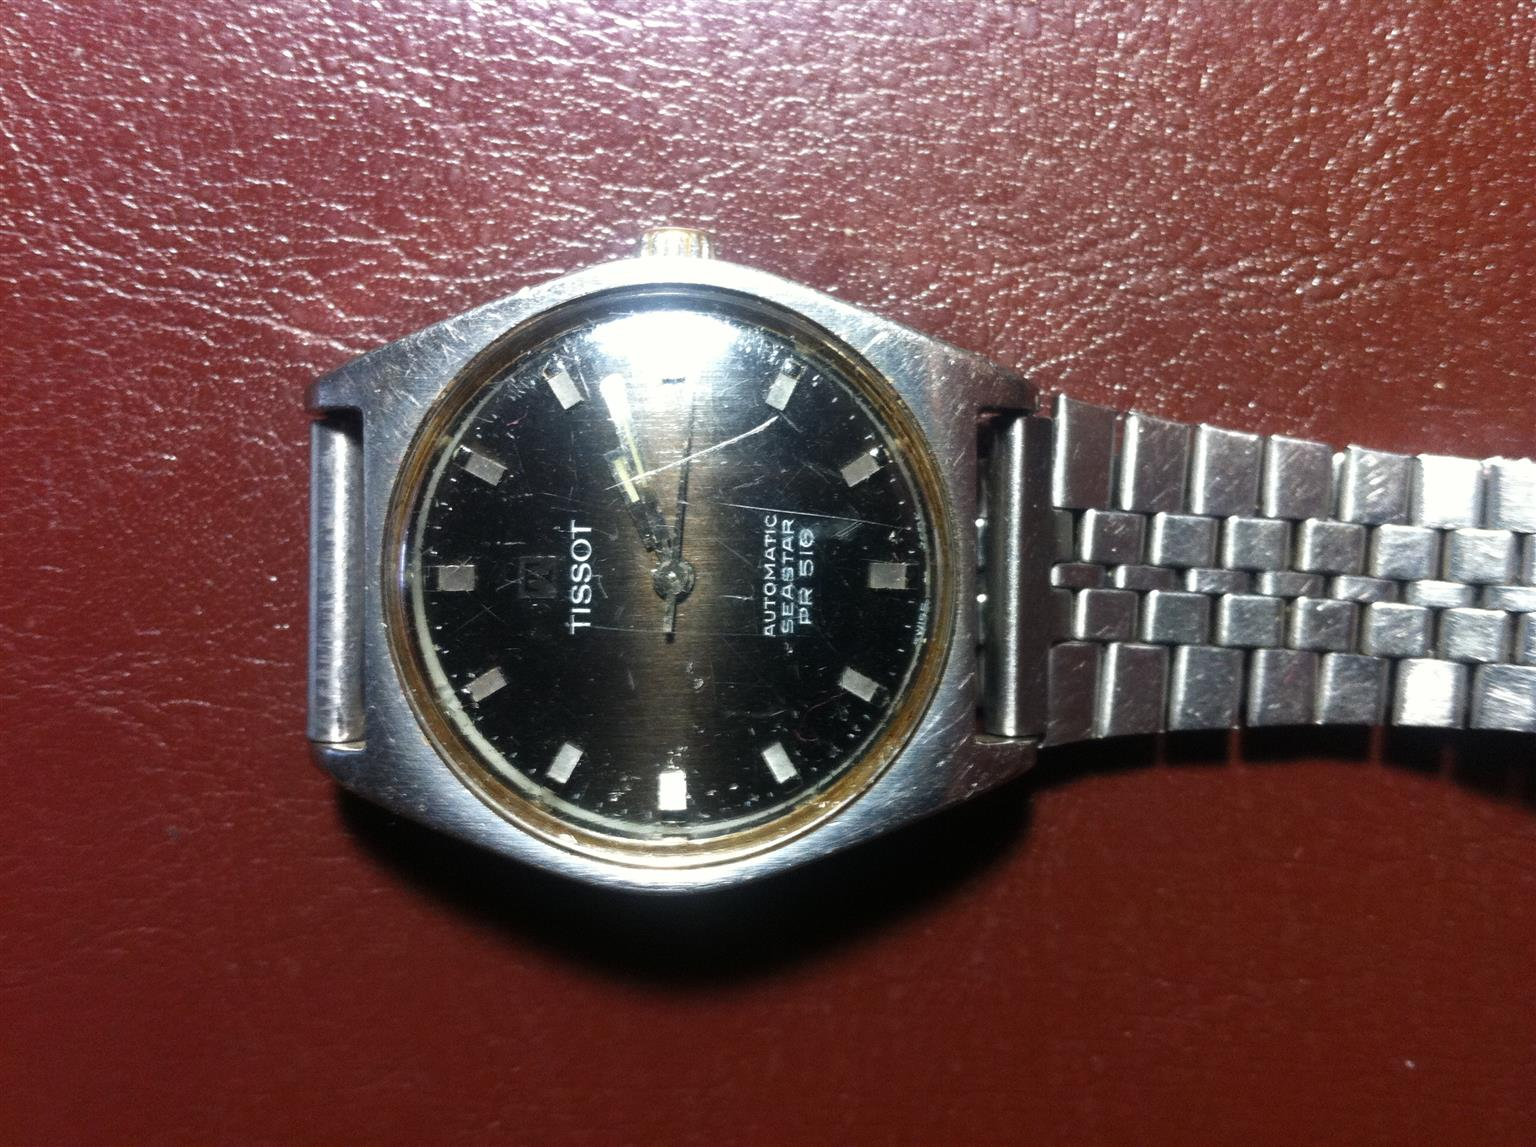 Tissot watch for sale